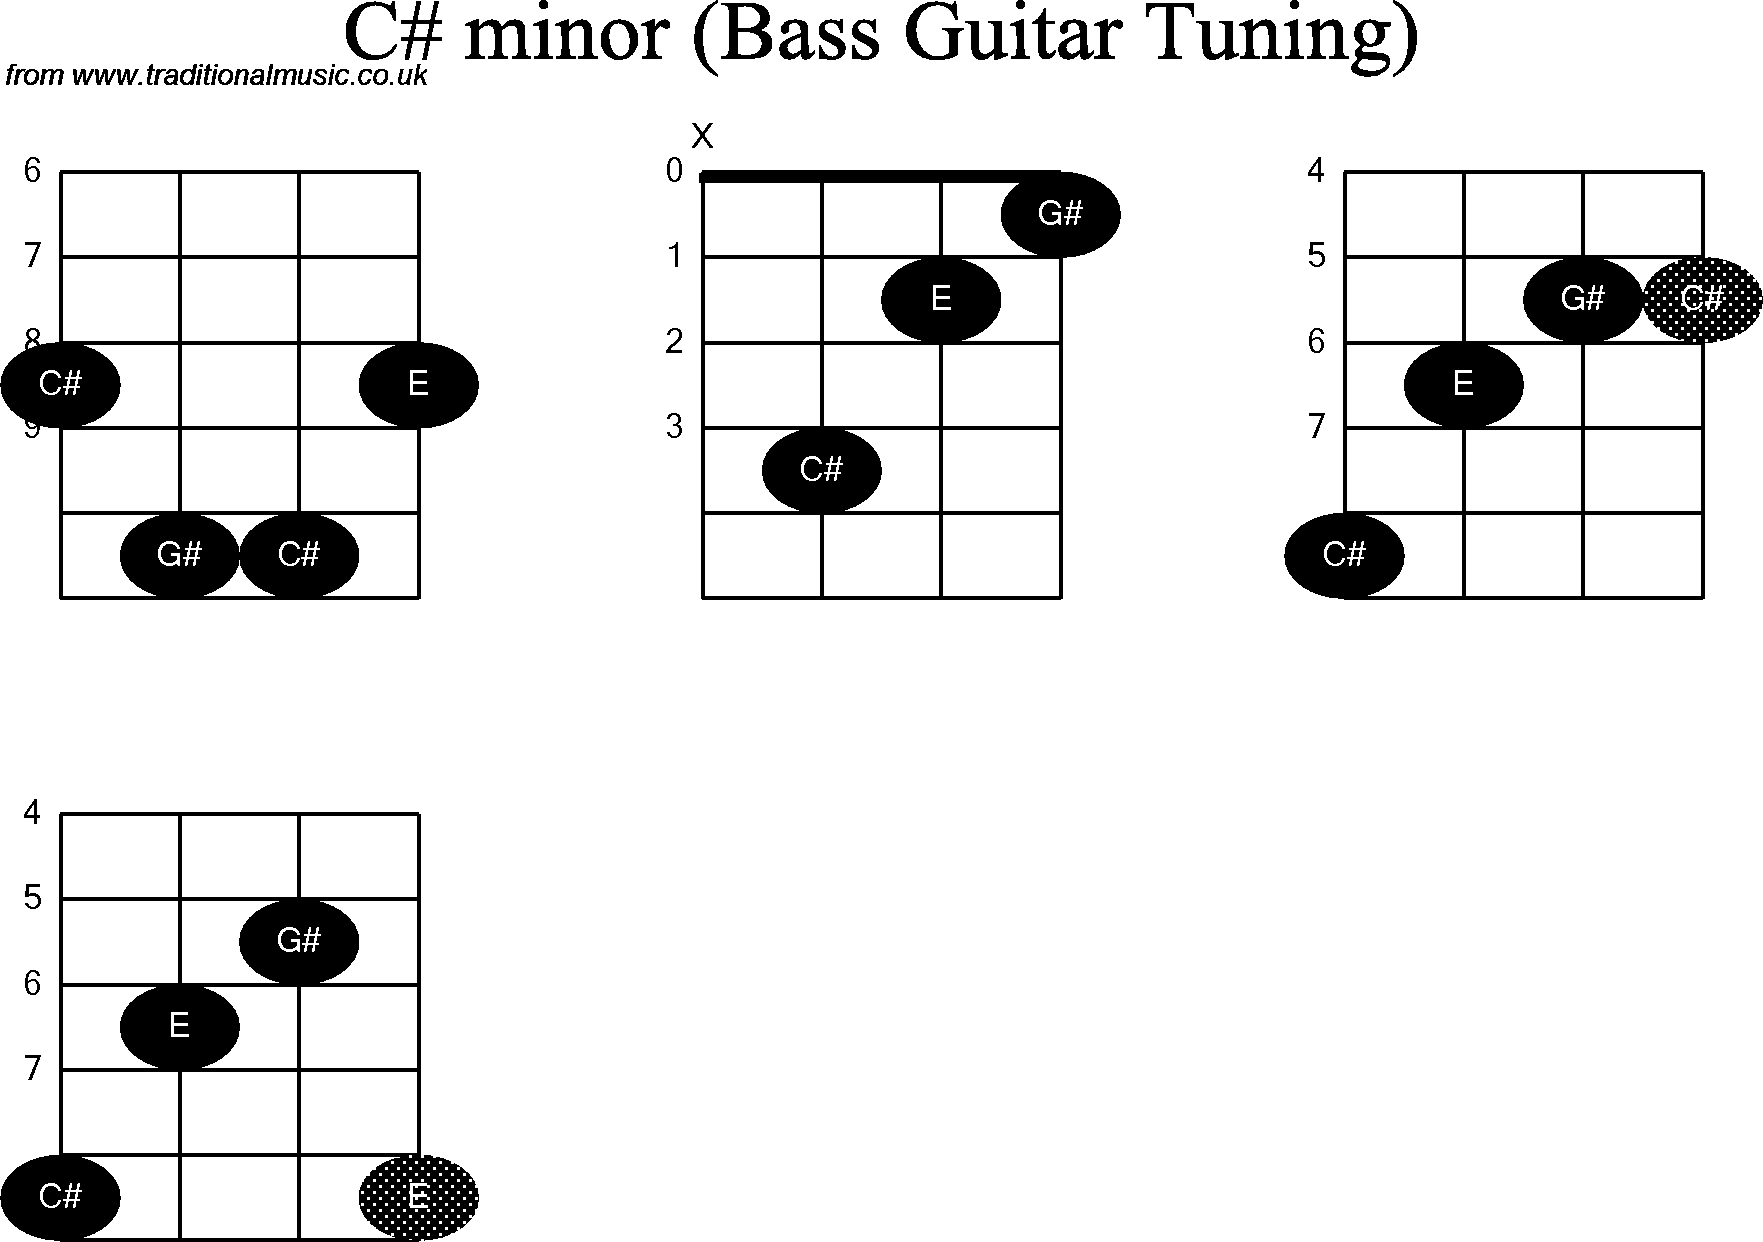 Bass Guitar Chord Diagrams For C Sharp Minor